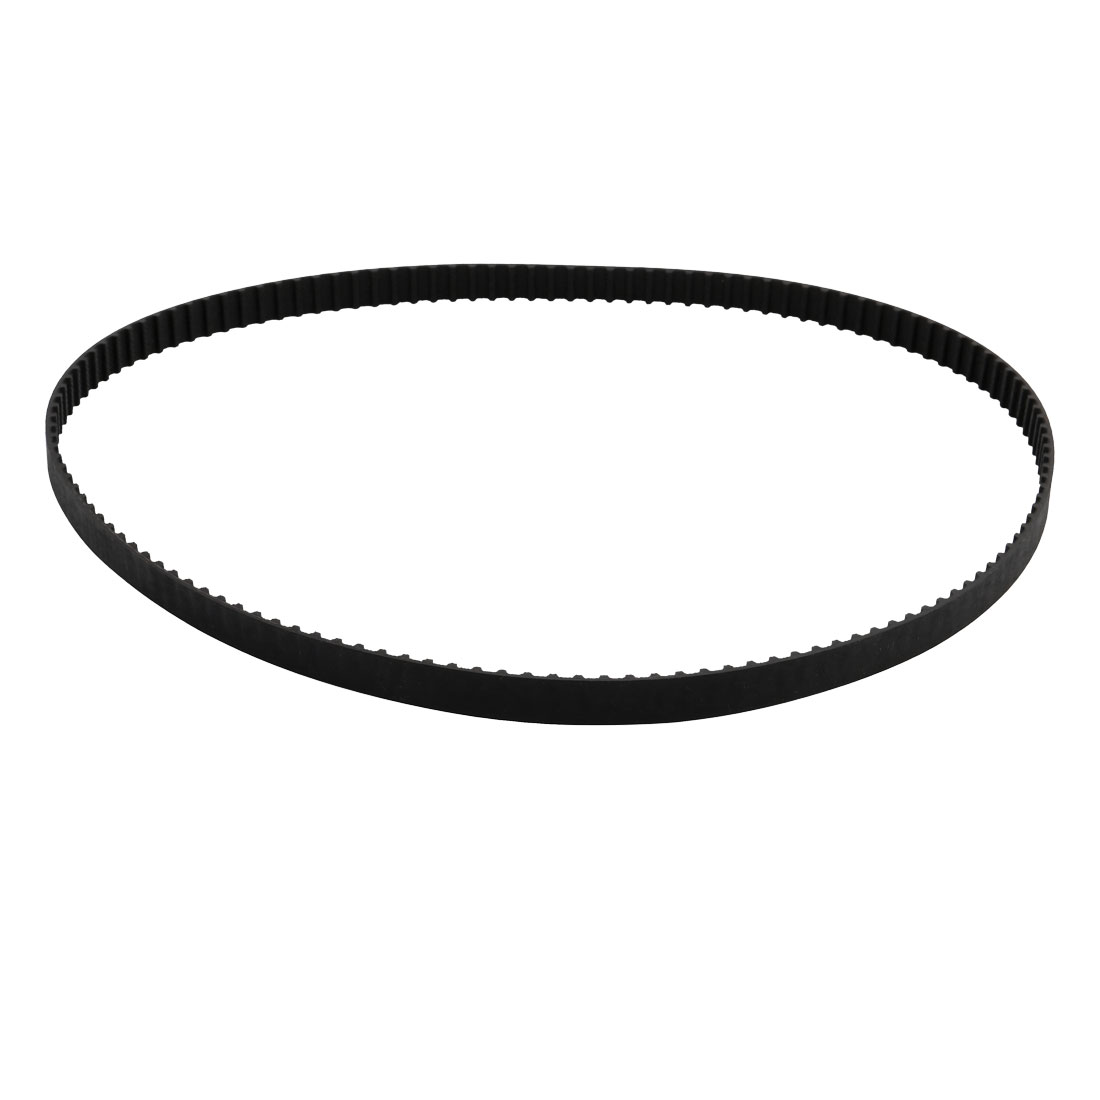 270XL 135 Teeth 10mm Width 5.08mm Pitch Stepper Motor Rubber Timing Belt Black